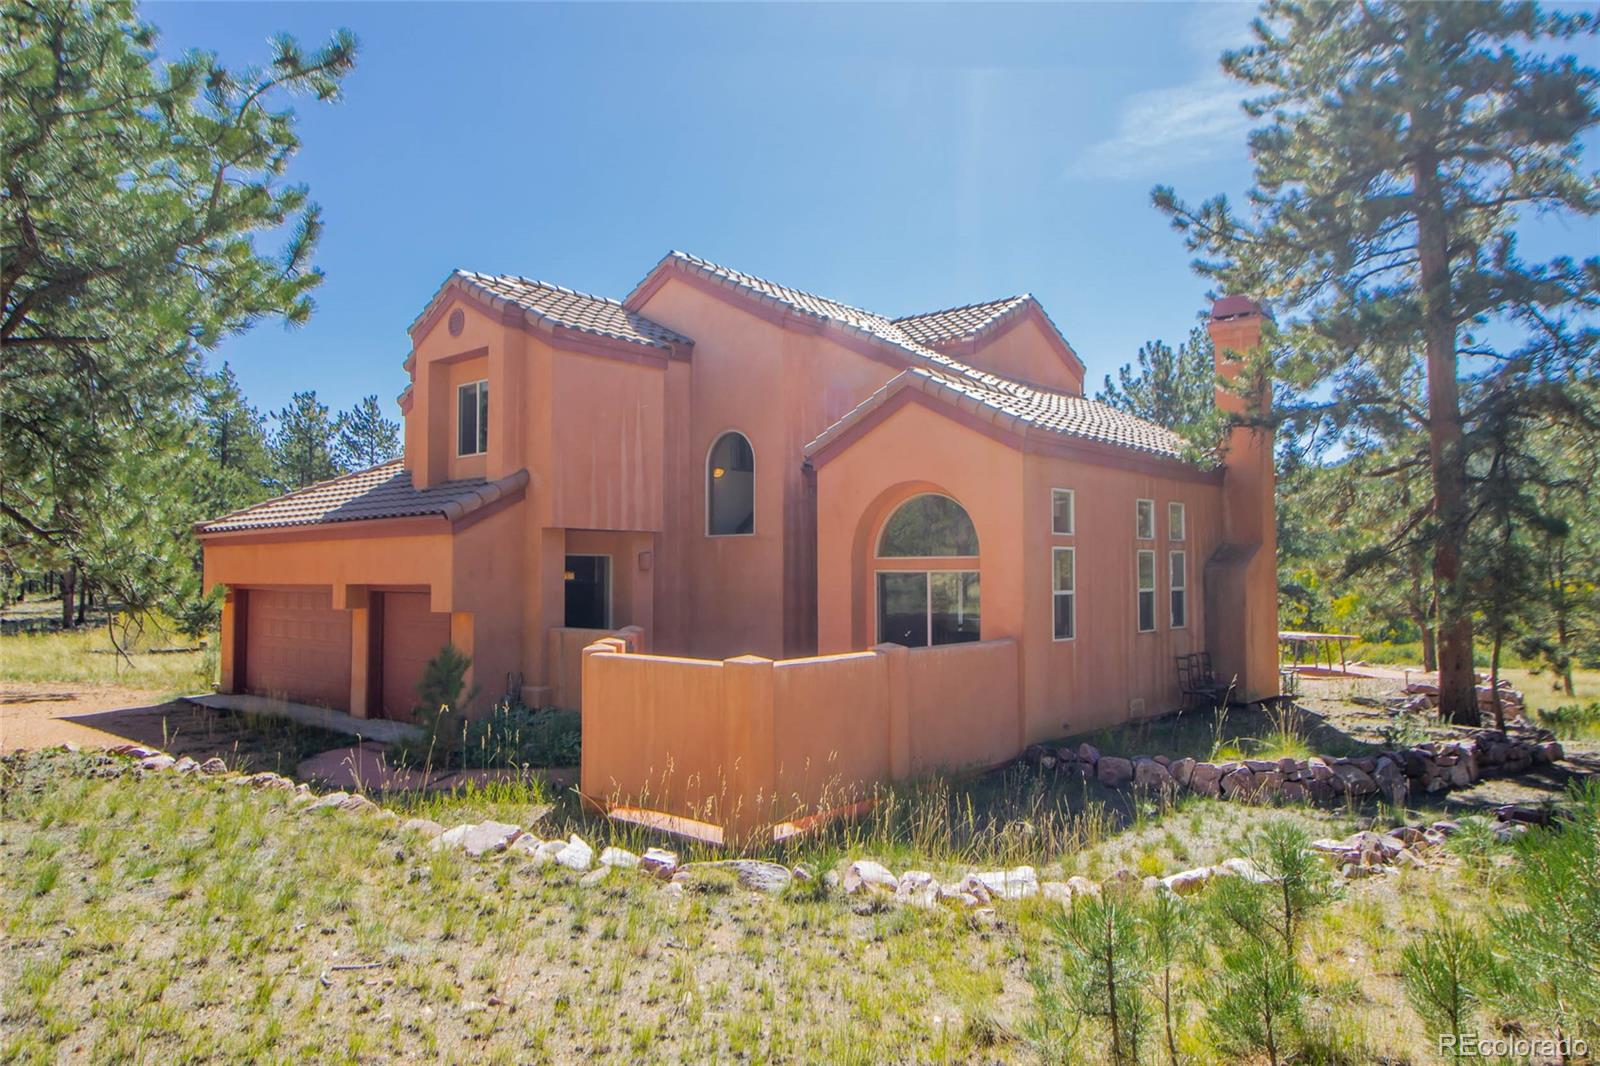 Enjoy the Good Life in this Mediterranean-style home on nearly 4 acres with legal access to National Forest & minutes to all the fun at 11-Mile Reservoir! This low-maintenance stucco home has tile roof, concrete patios, & sits on fully usable level lot. Vaulted ceilings, cozy gas fireplace, & lots of natural light shining through windows that take full advantage of the southern exposure. 2 upper-level Master Suites, one featuring a 5-pc Bath with double vanity, jetted tub, and over-sized shower with seating inside.  The other Master Suite has private Full Bath and French doors leading to its own Sitting Room. Open-concept design Great Room has French doors that lead to landscaped back patio. 3-car garage with ample space for toys and plenty of room outside for RV parking. Easy access year-round to county- maintained roads. You'll love coming home on this scenic drive through open landscapes, rock outcroppings, and majestic vistas that feel right out of a picture book!